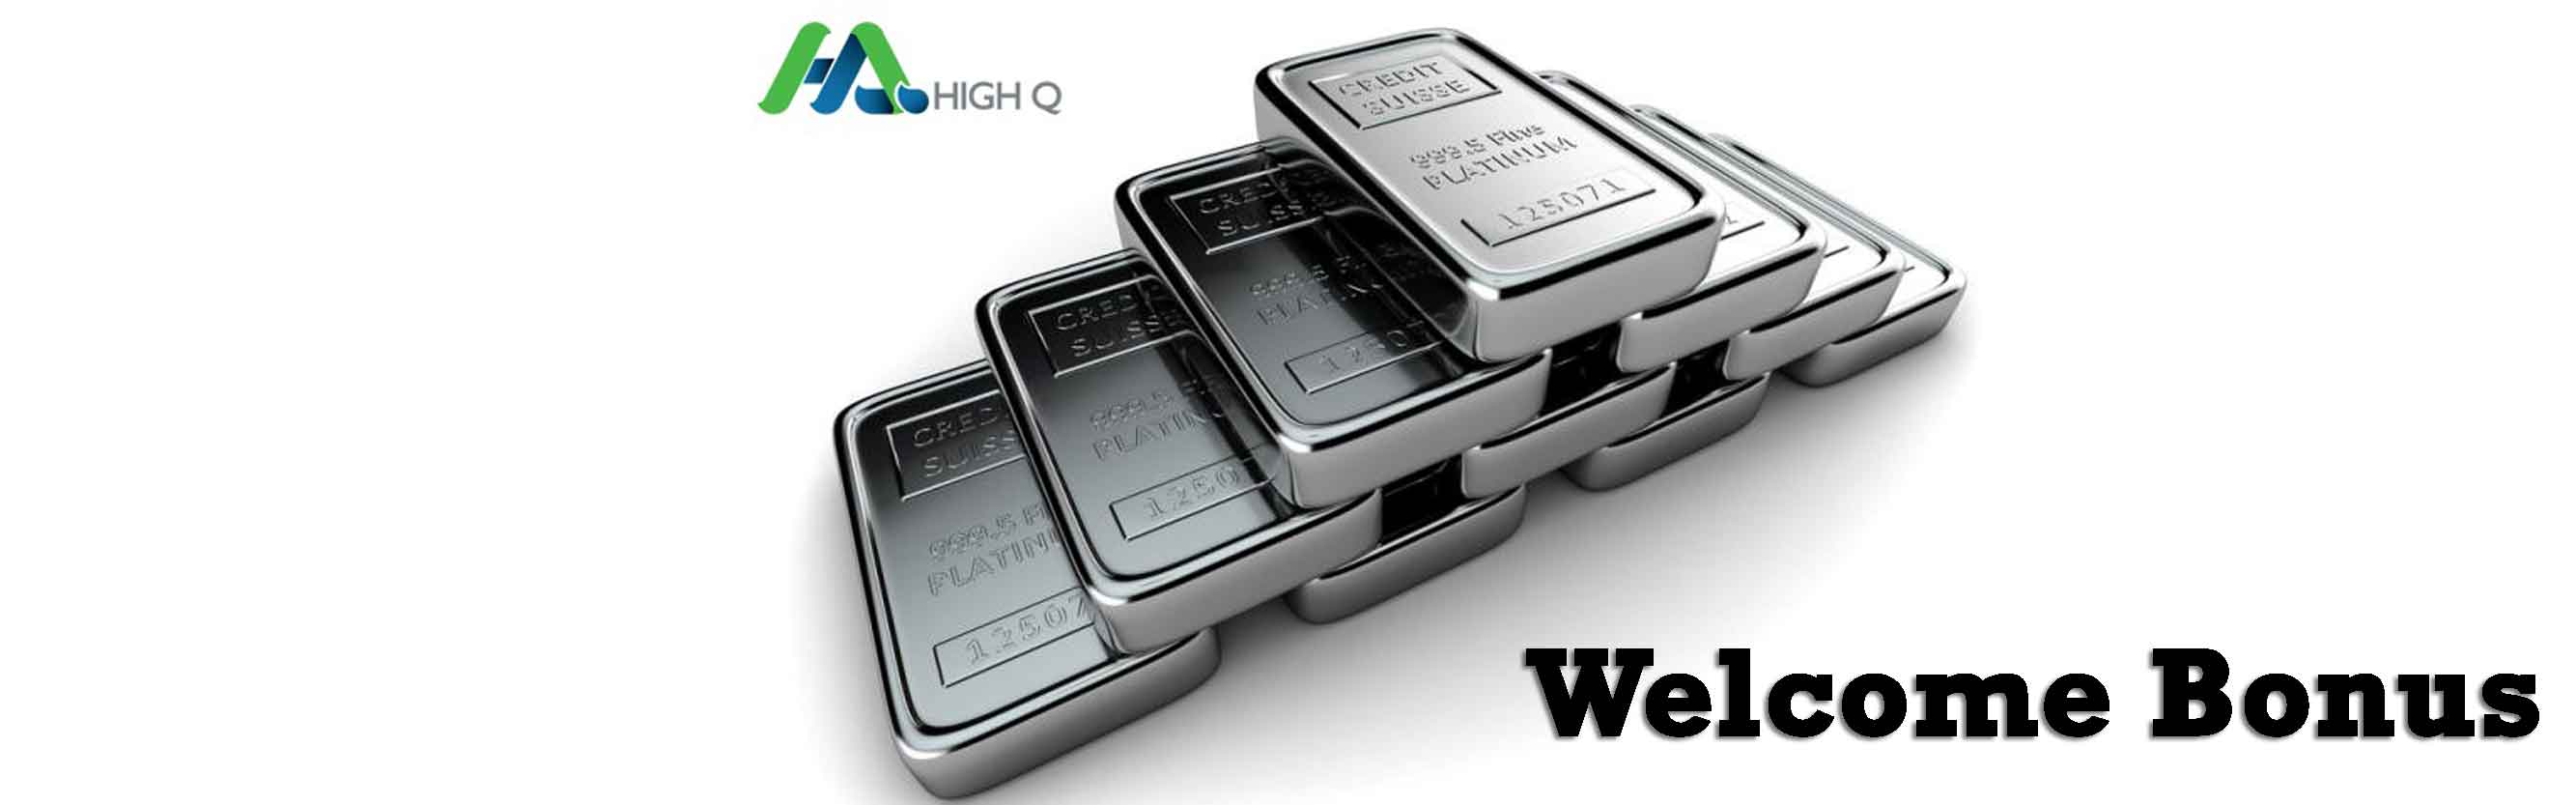 HighQ FX Welcome Bonus